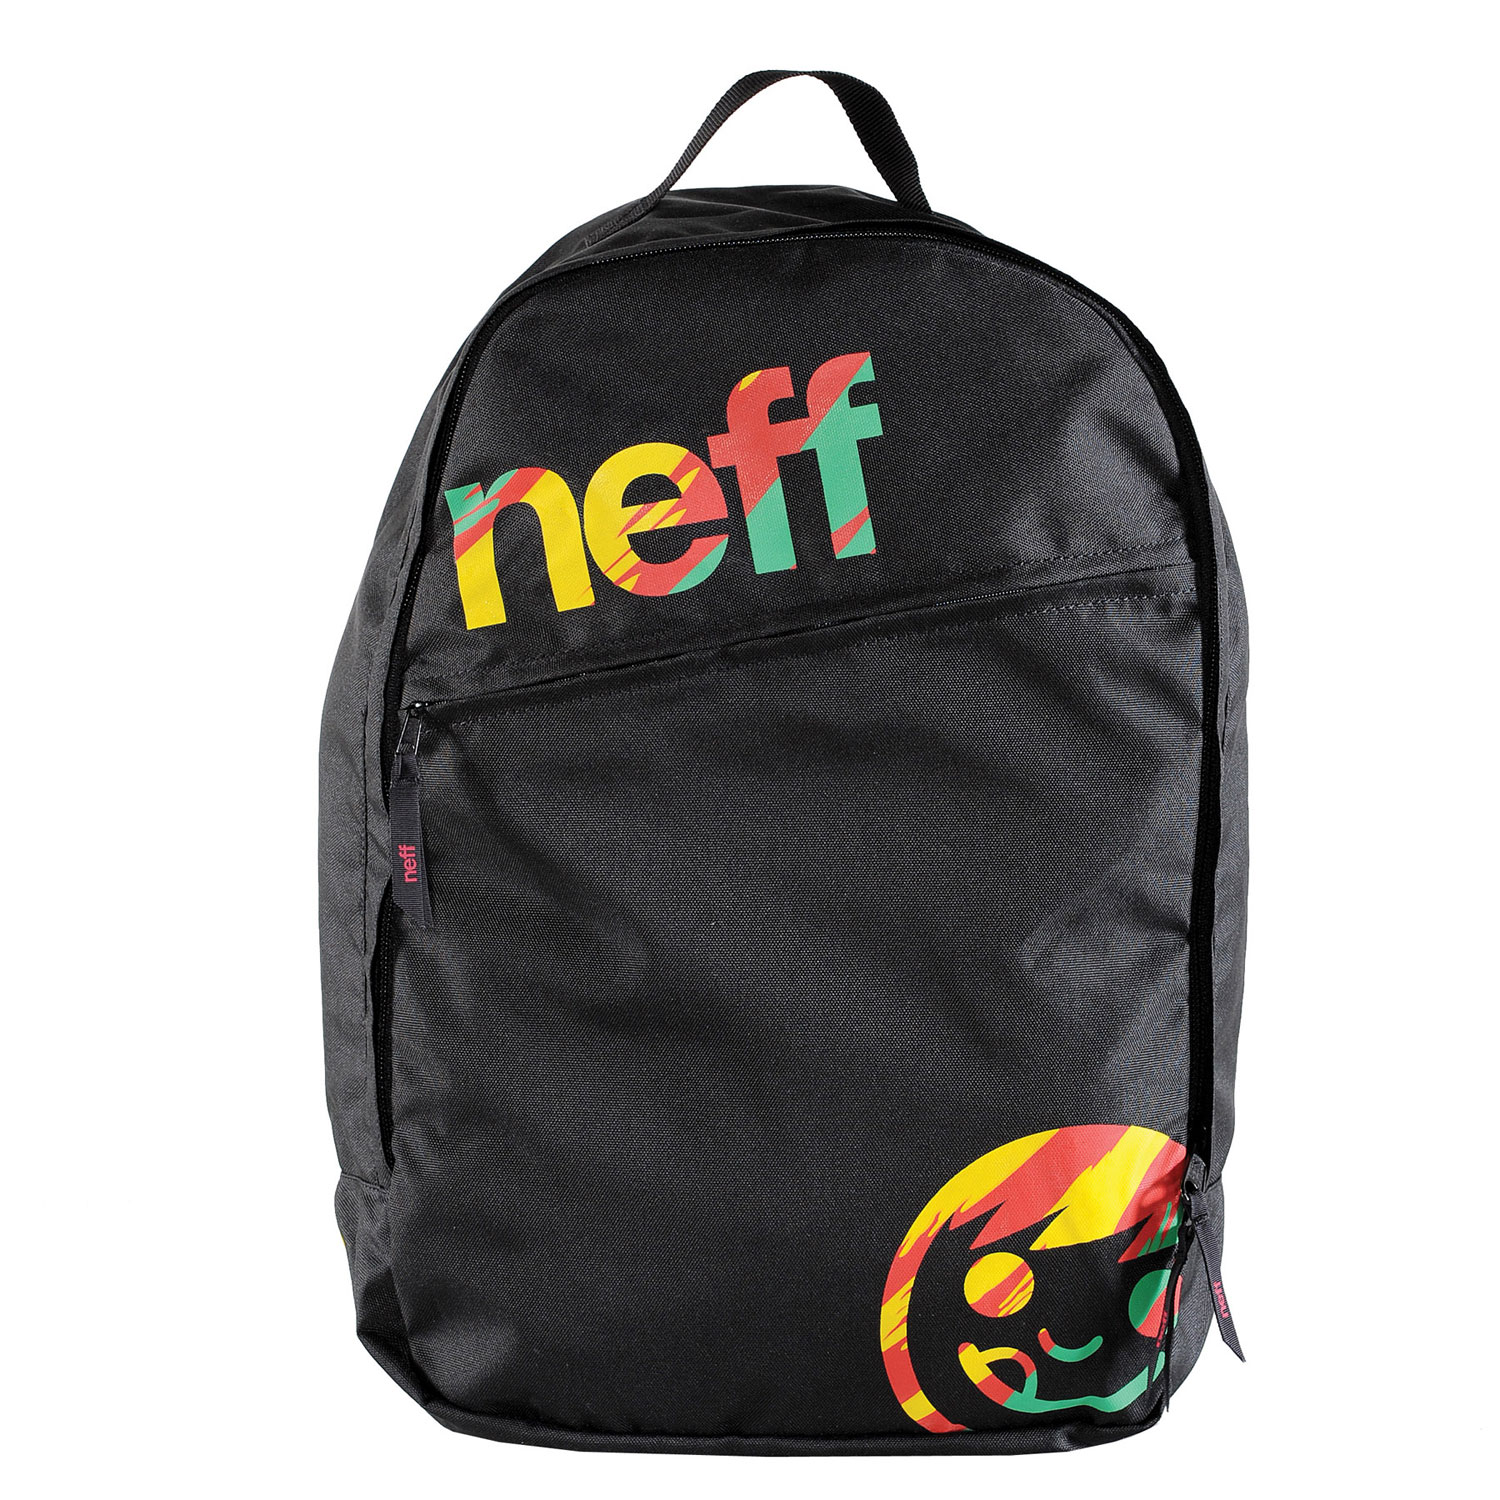 Skateboard Key Features of the Neff Daily Backpack: 100% Polyester - $30.00